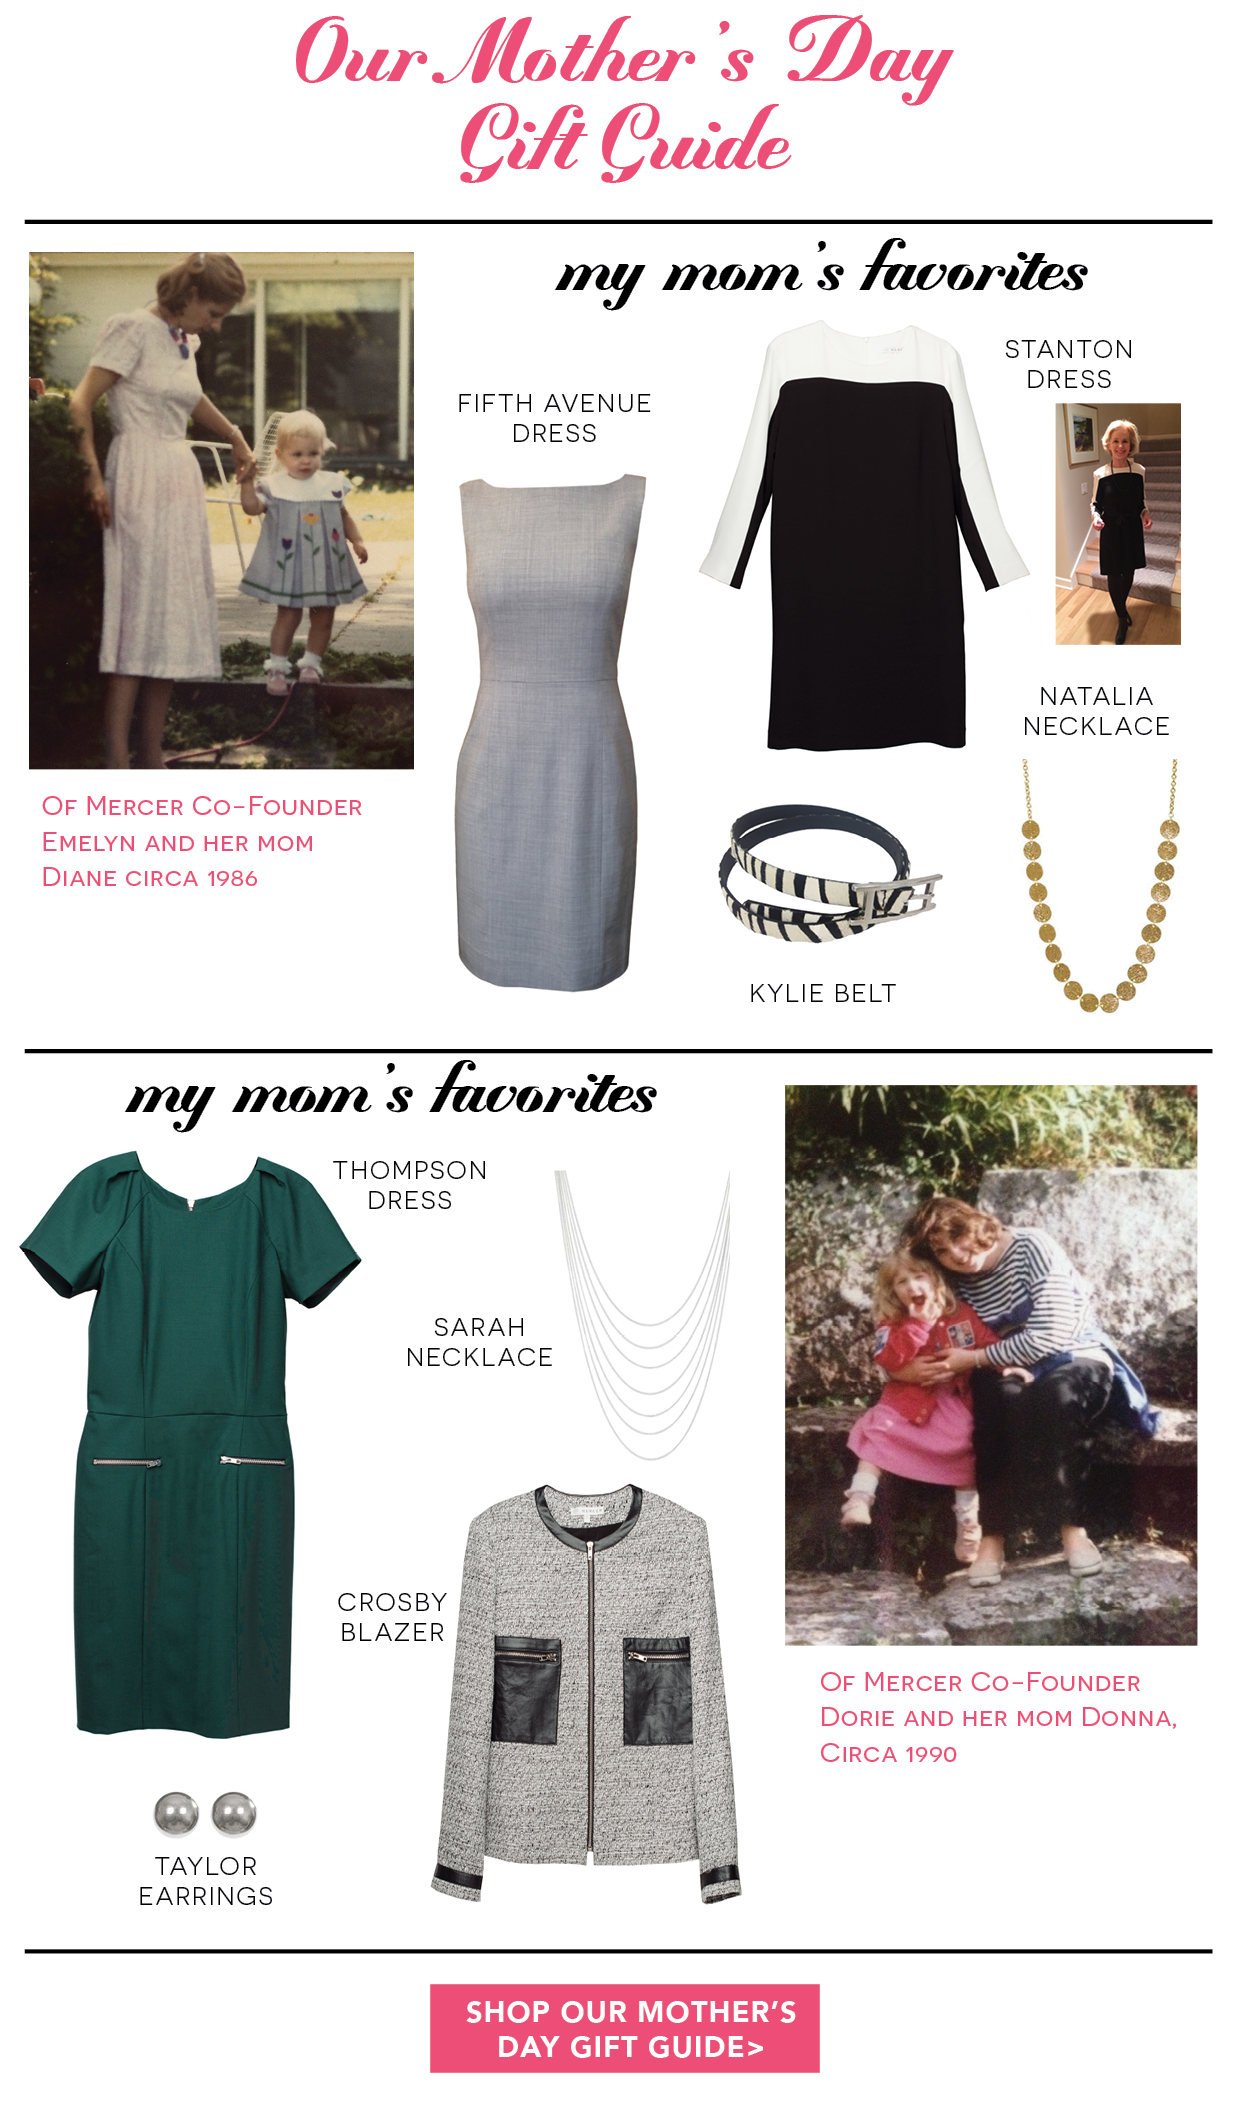 Of Mercer Mother's Day Gift Guide